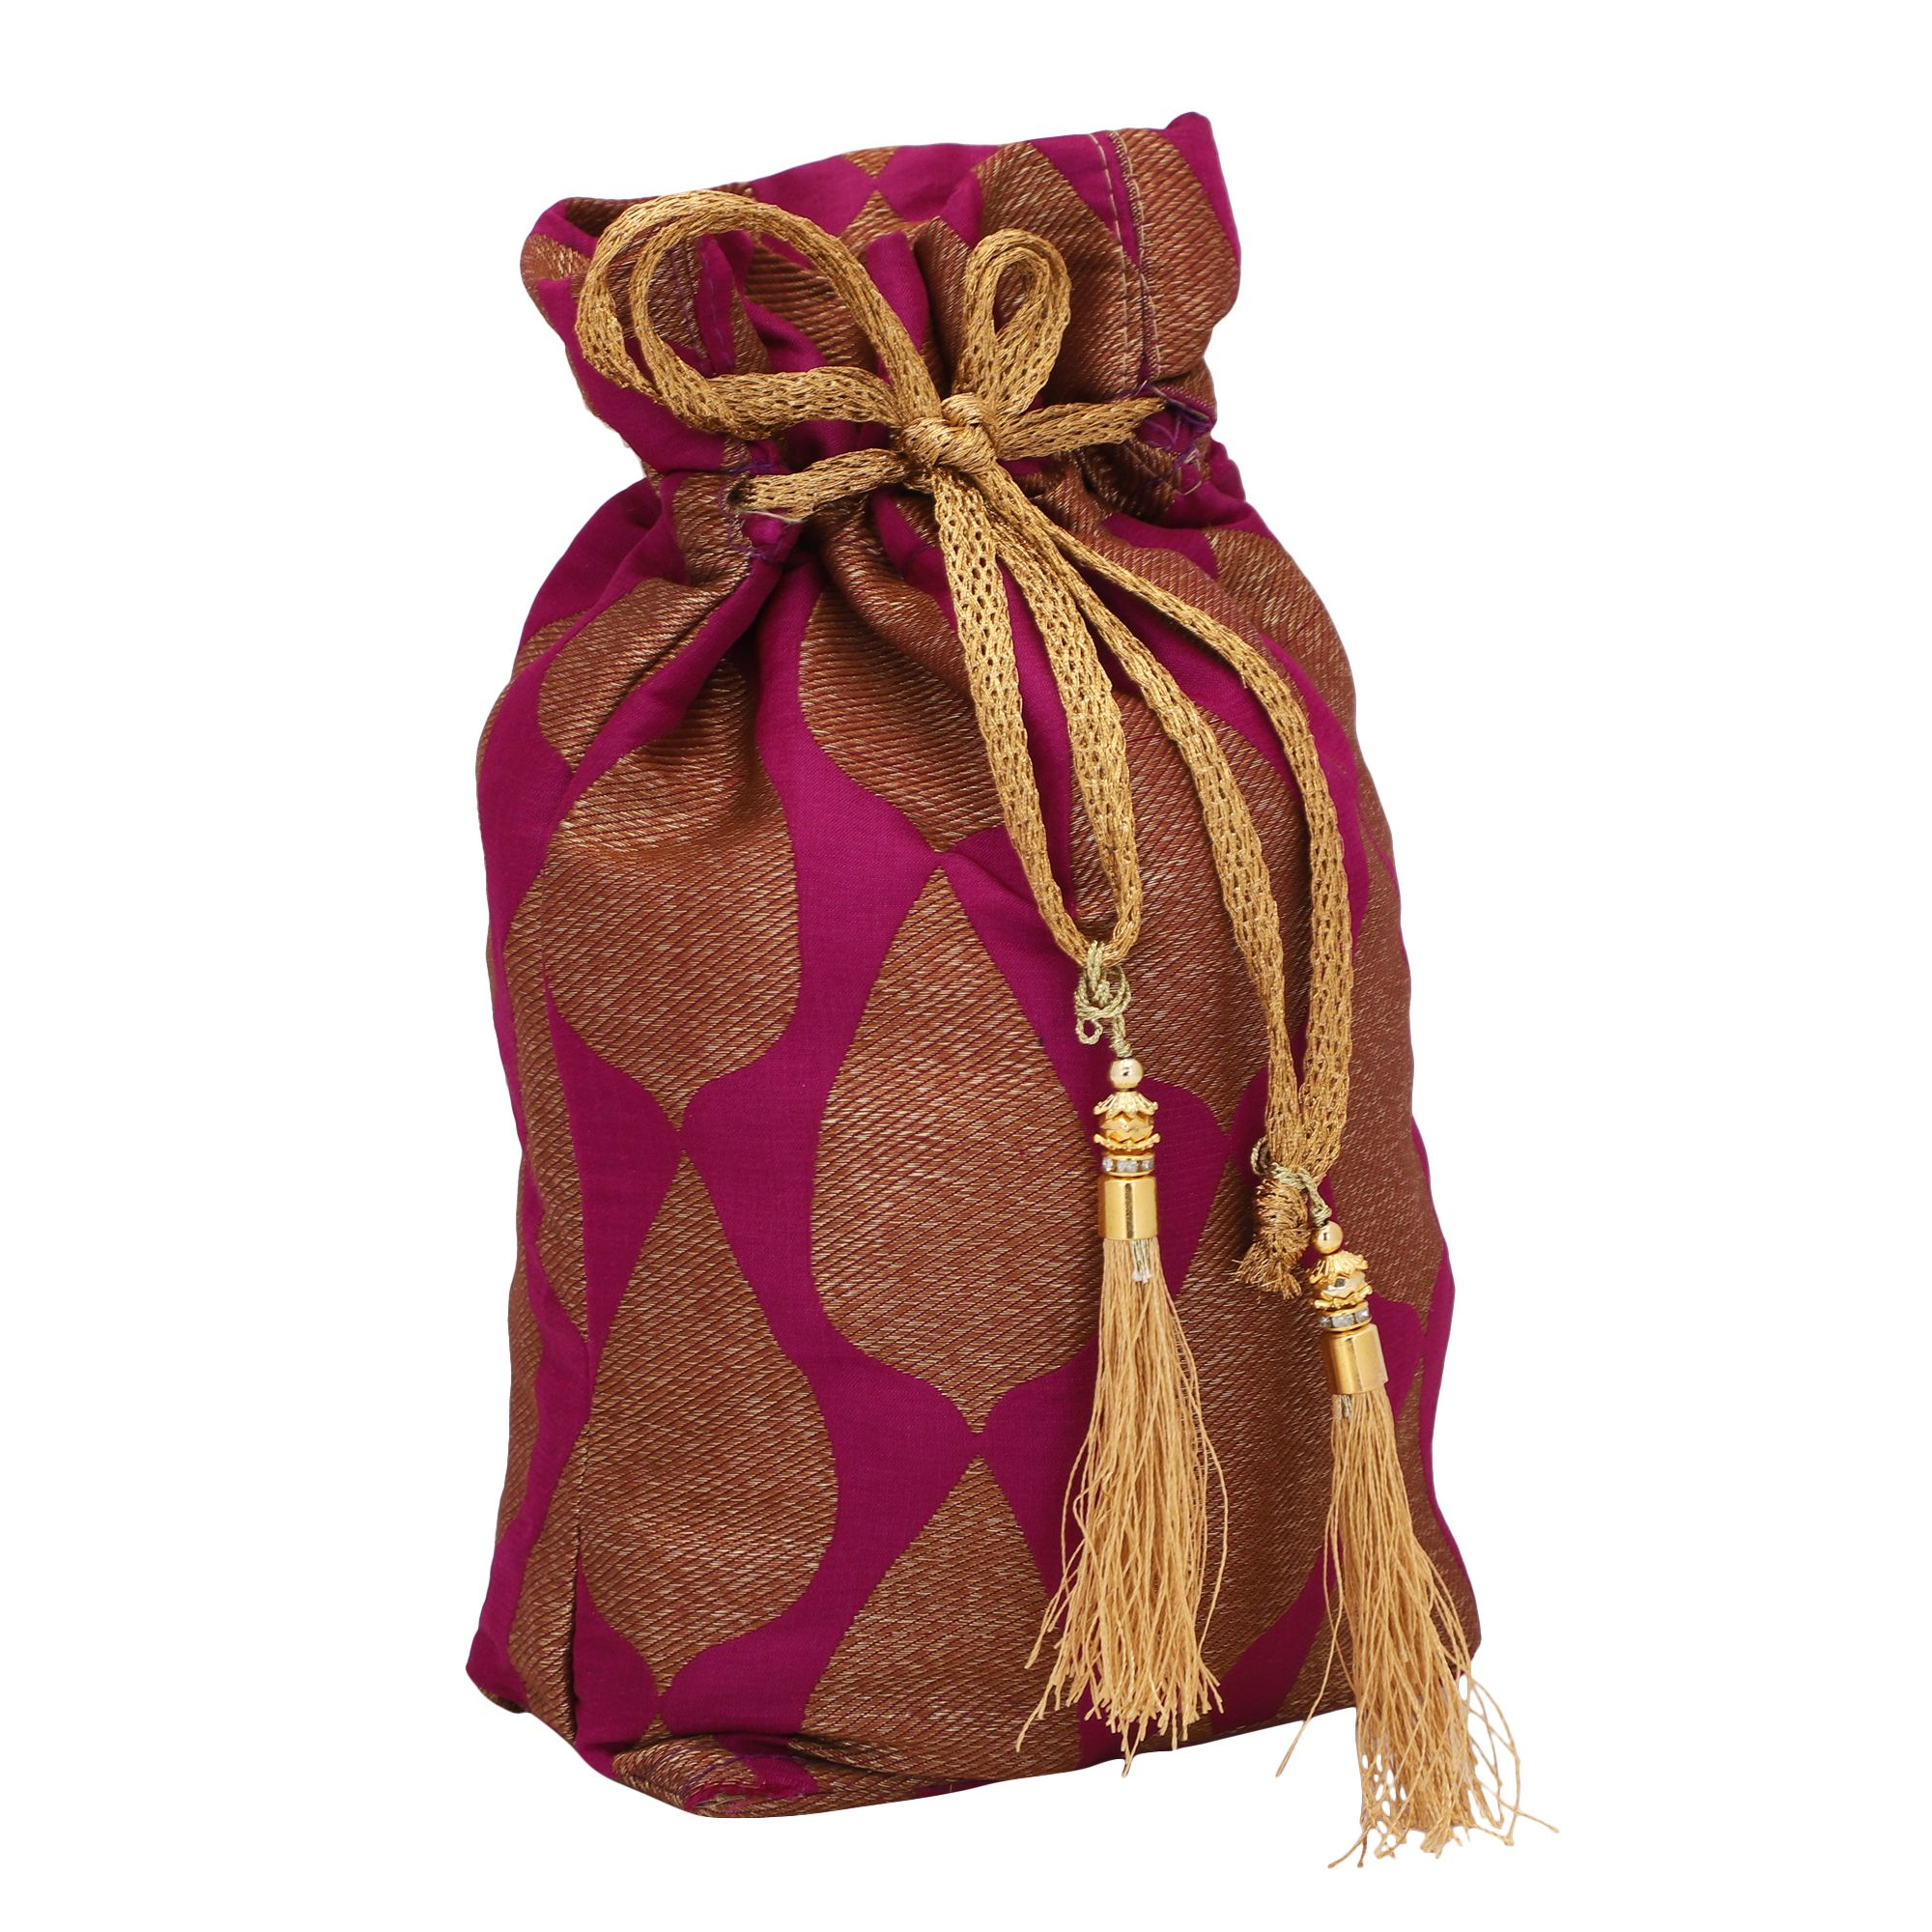 Violet Banarasi Jamawer Potli Bag With Tassels 2